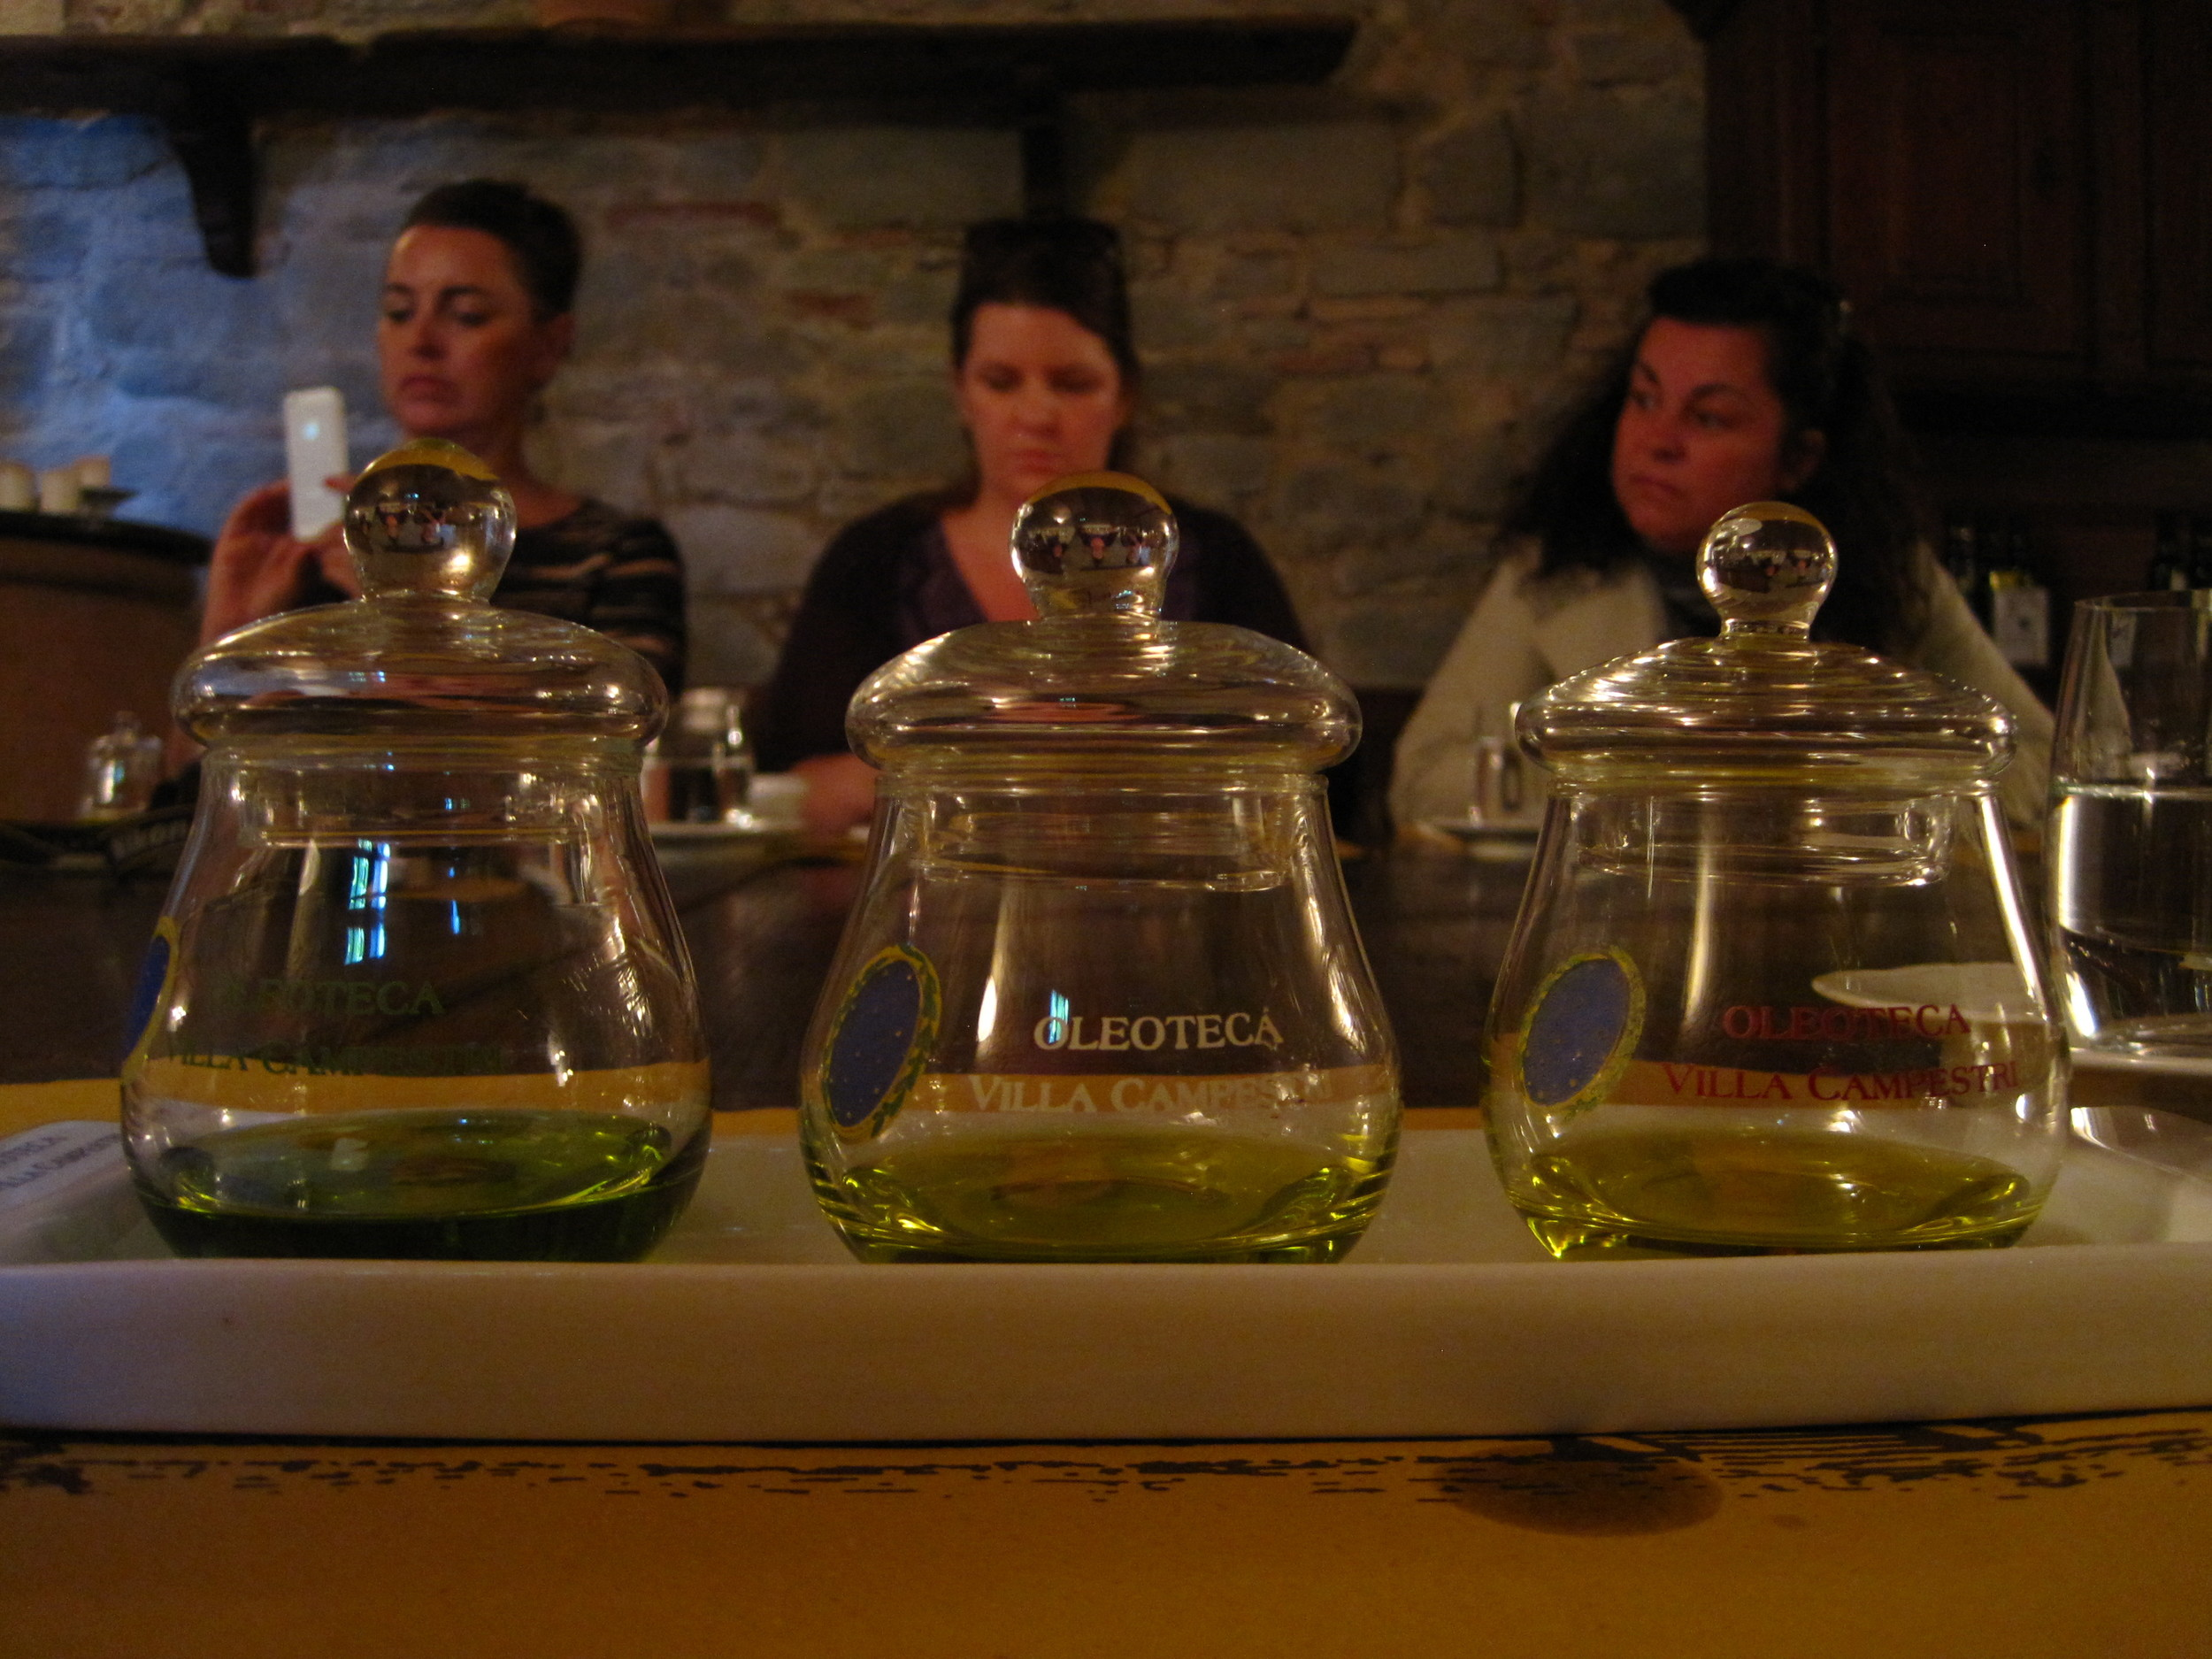 Guided olive oil tasting/sensory analysis at Villa Campestri. Now we know how to pick the good stuff.